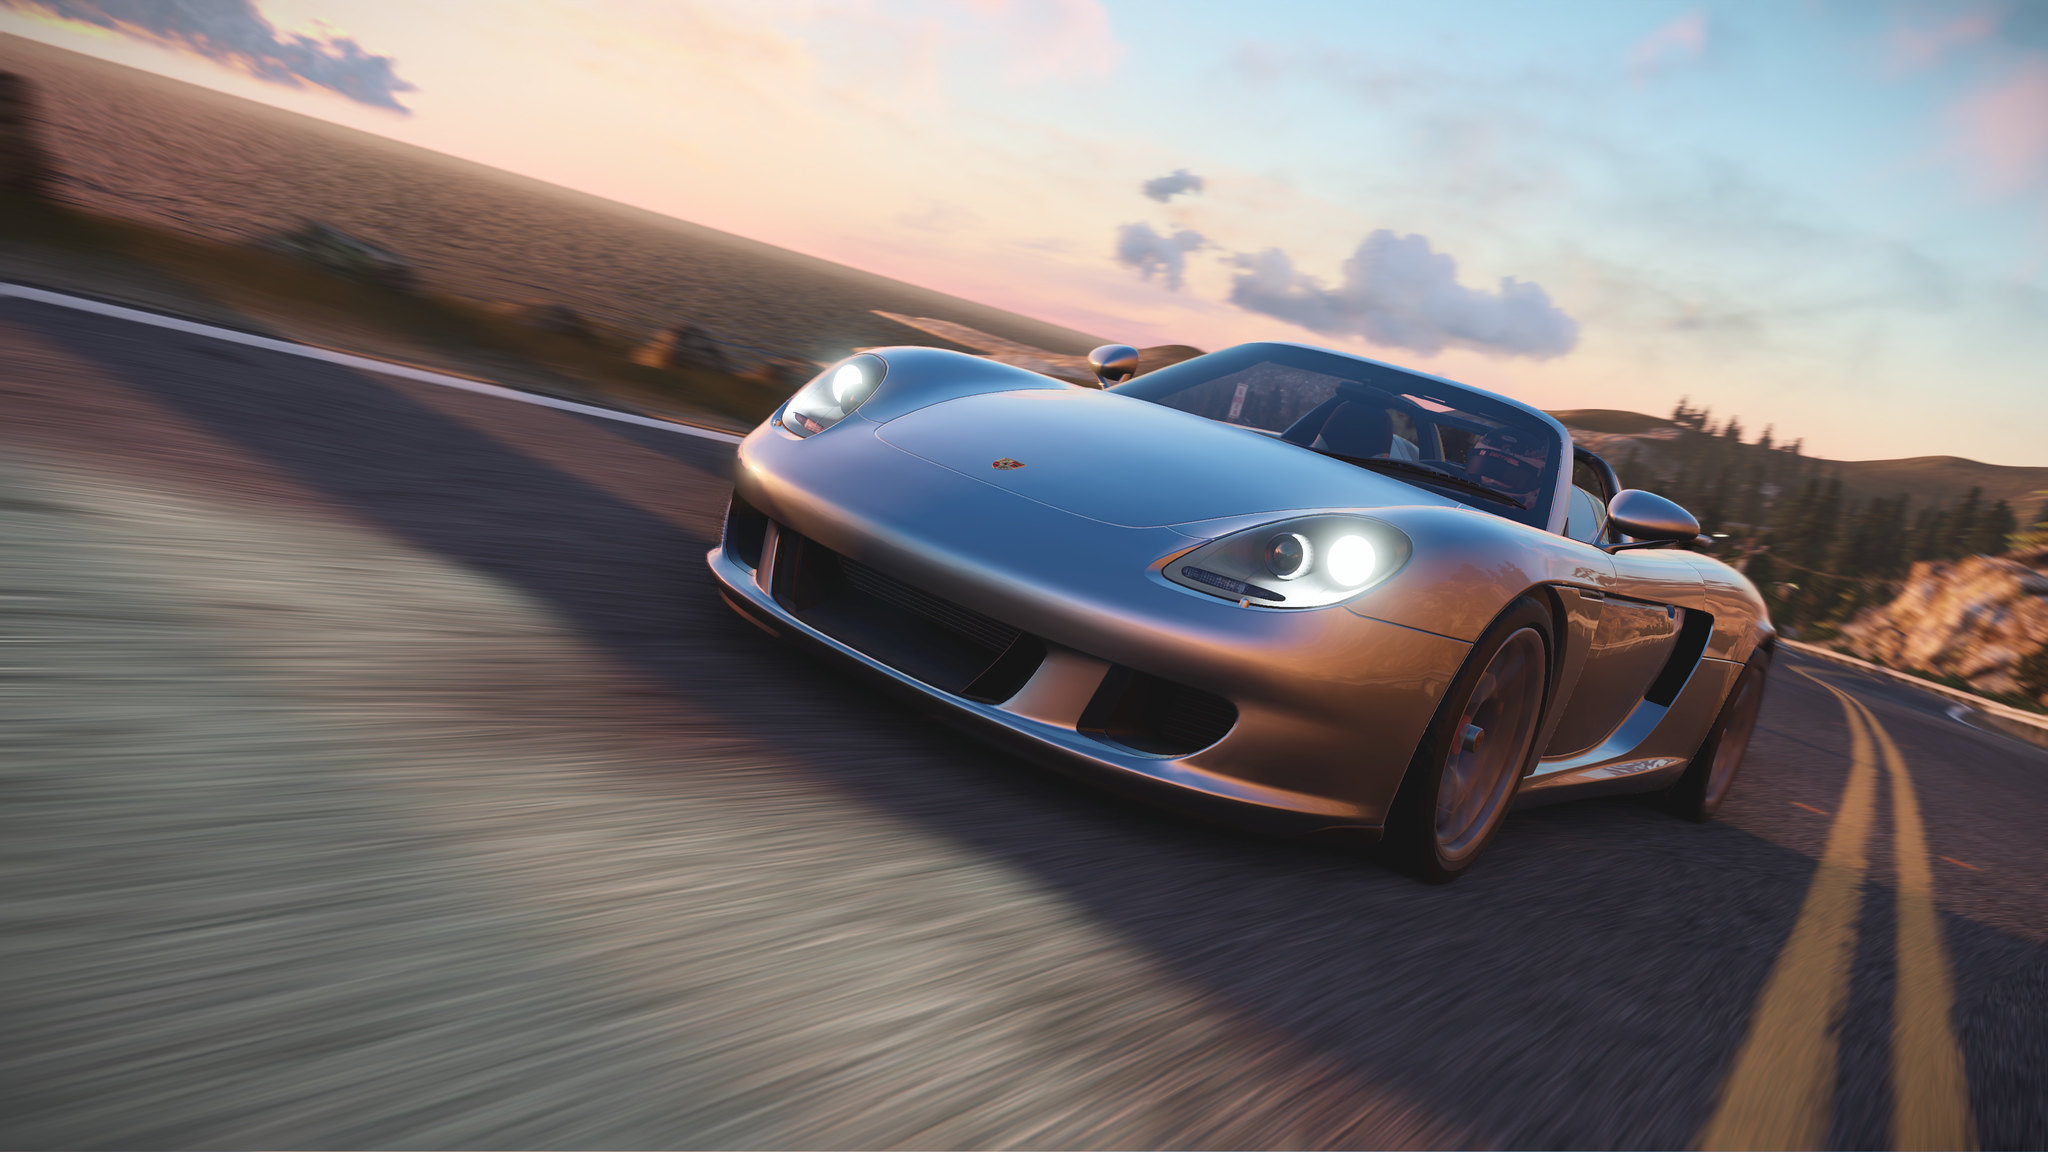 Project-CARS-2-Porsche-Legends-Pack-Porsche-Carrera-GT